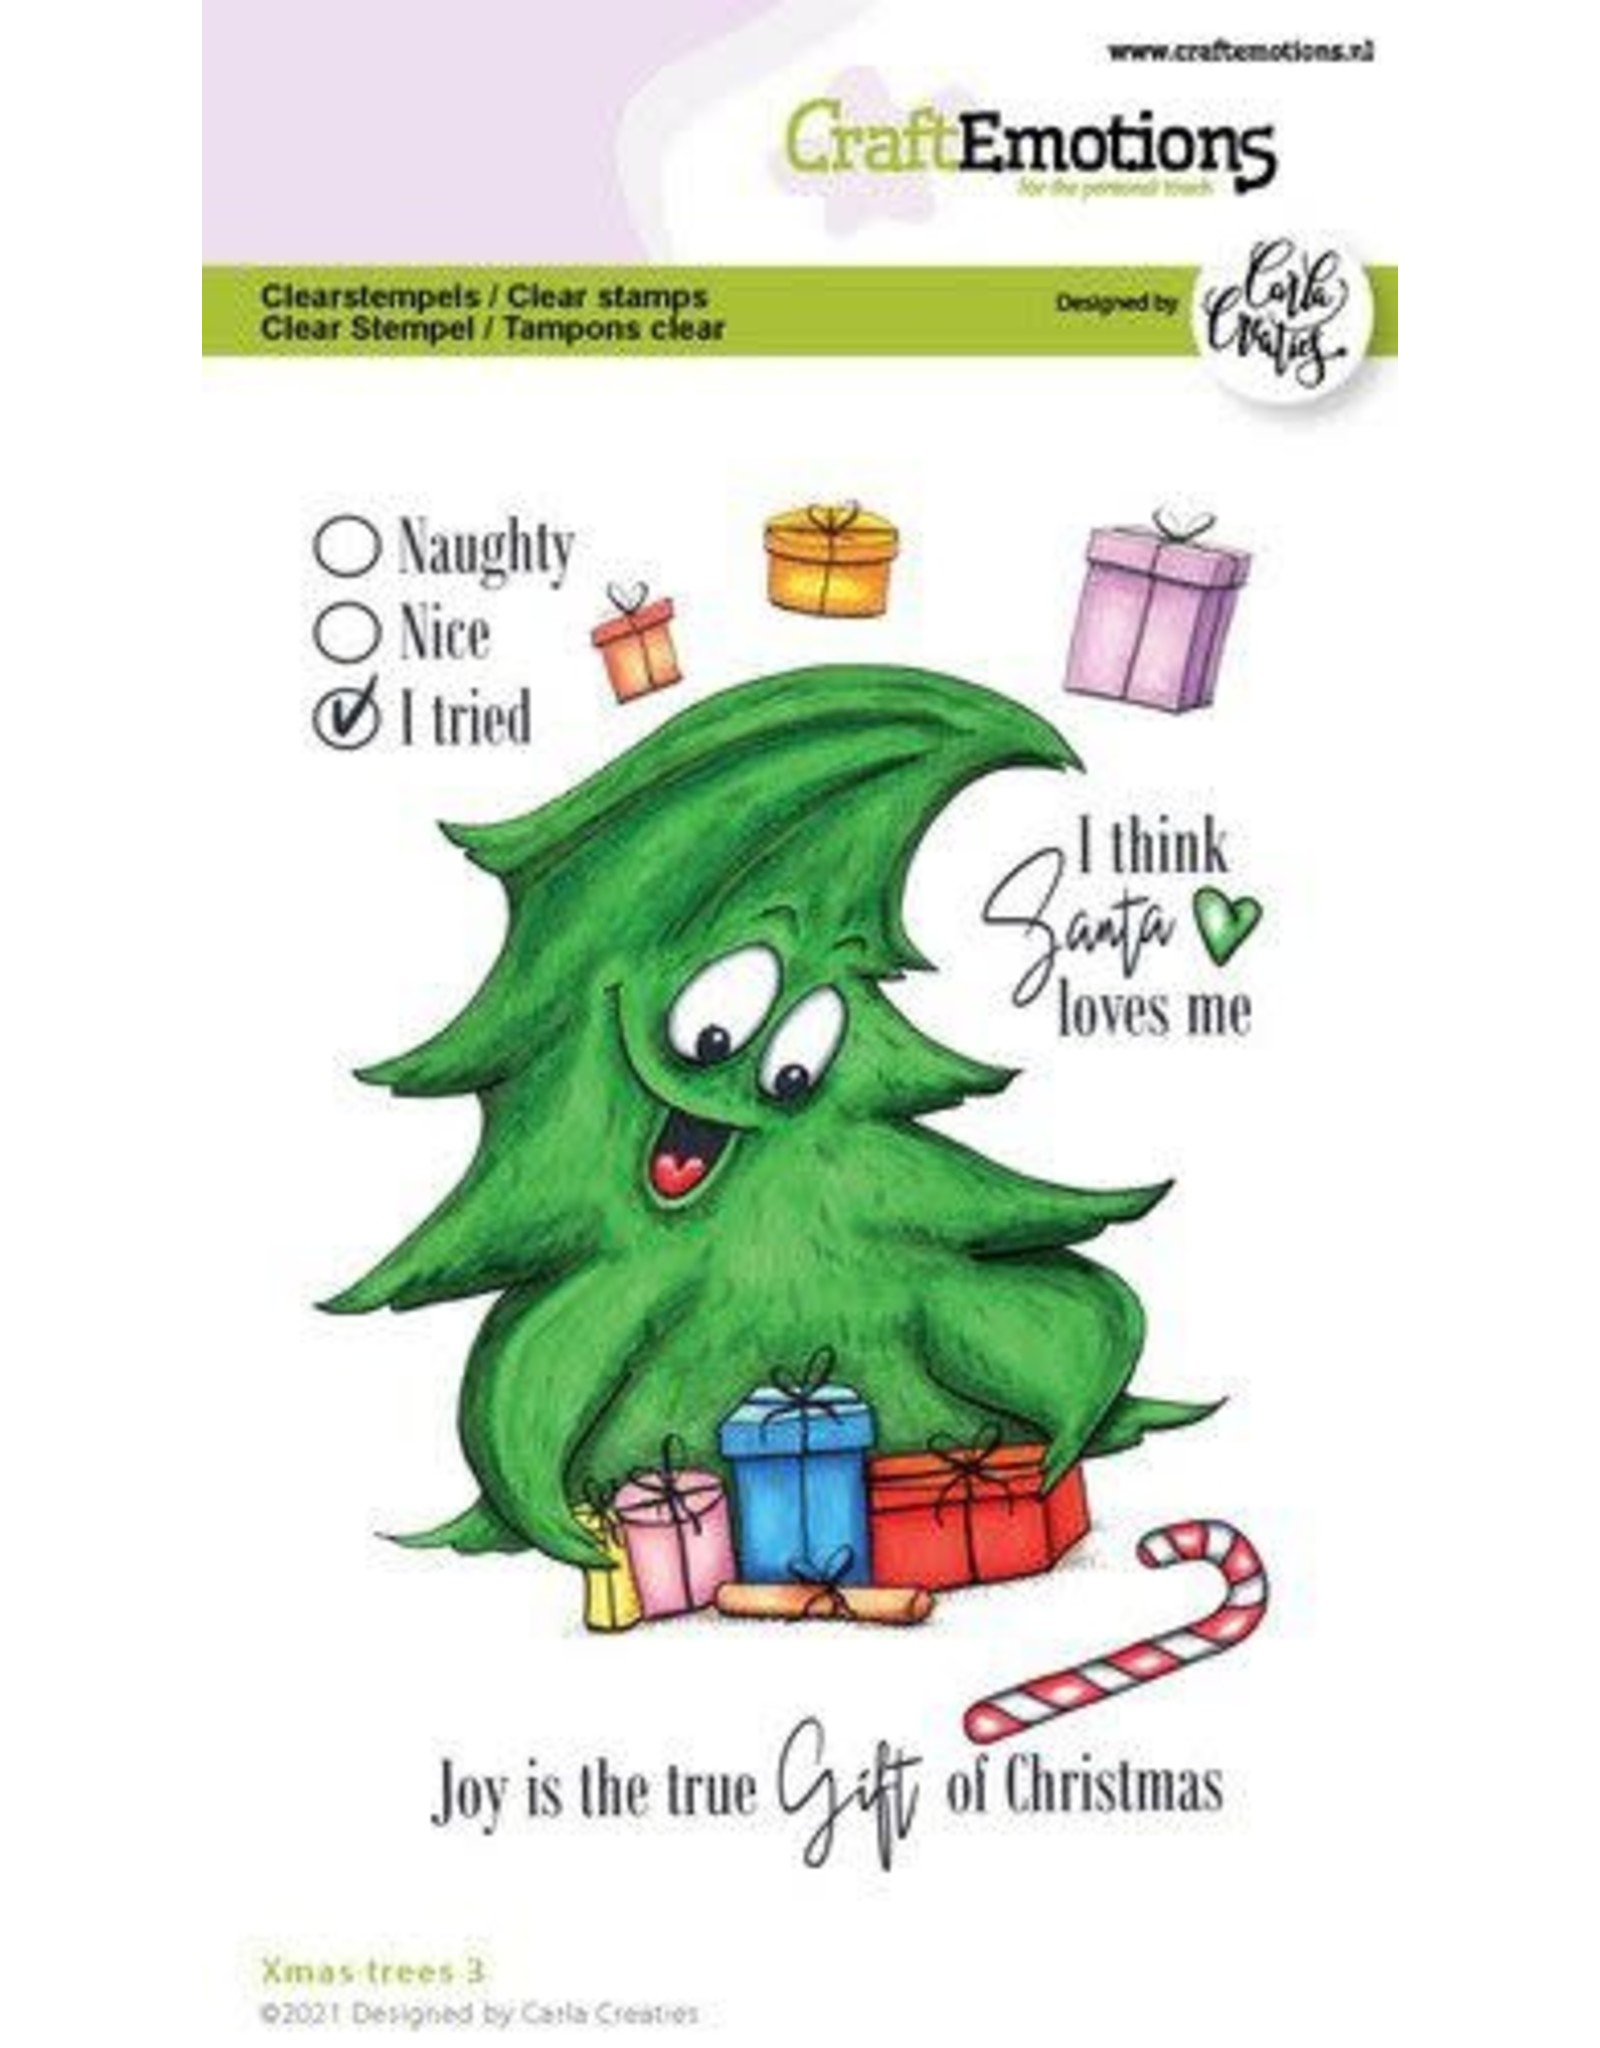 Craft Emotions CraftEmotions clearstamps A6 - Xmas trees 3 (Eng) Carla Creaties